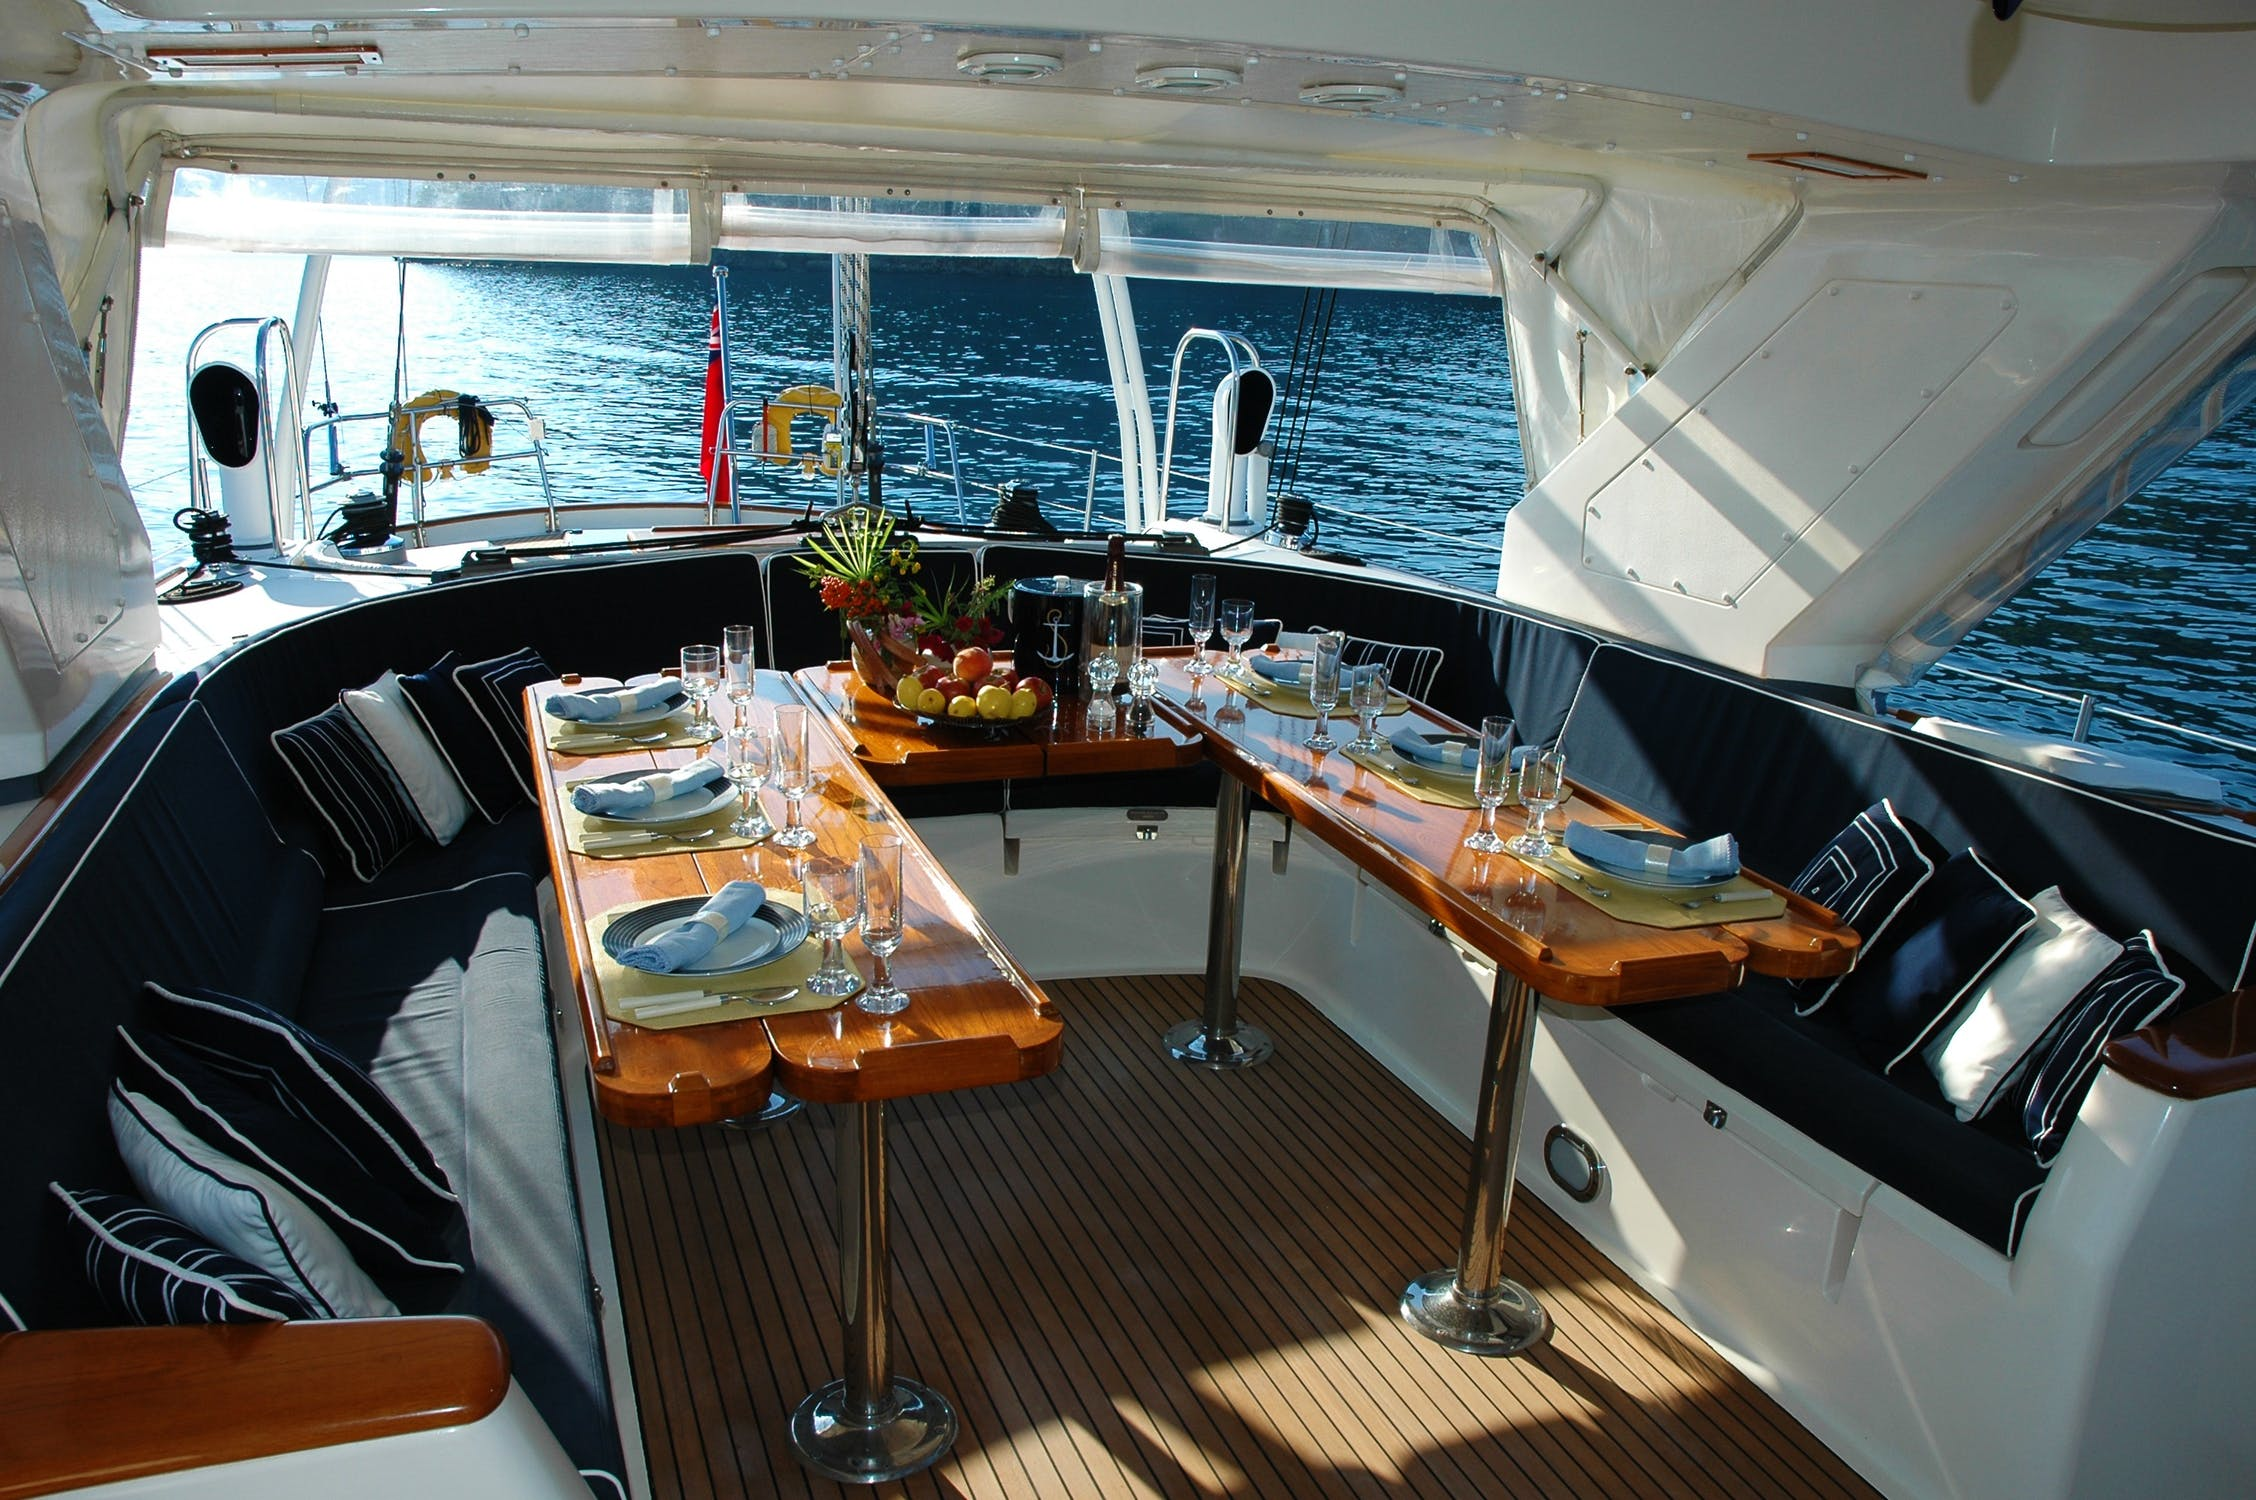 Invite your guests to dine virtually from international waters on your private yacht!